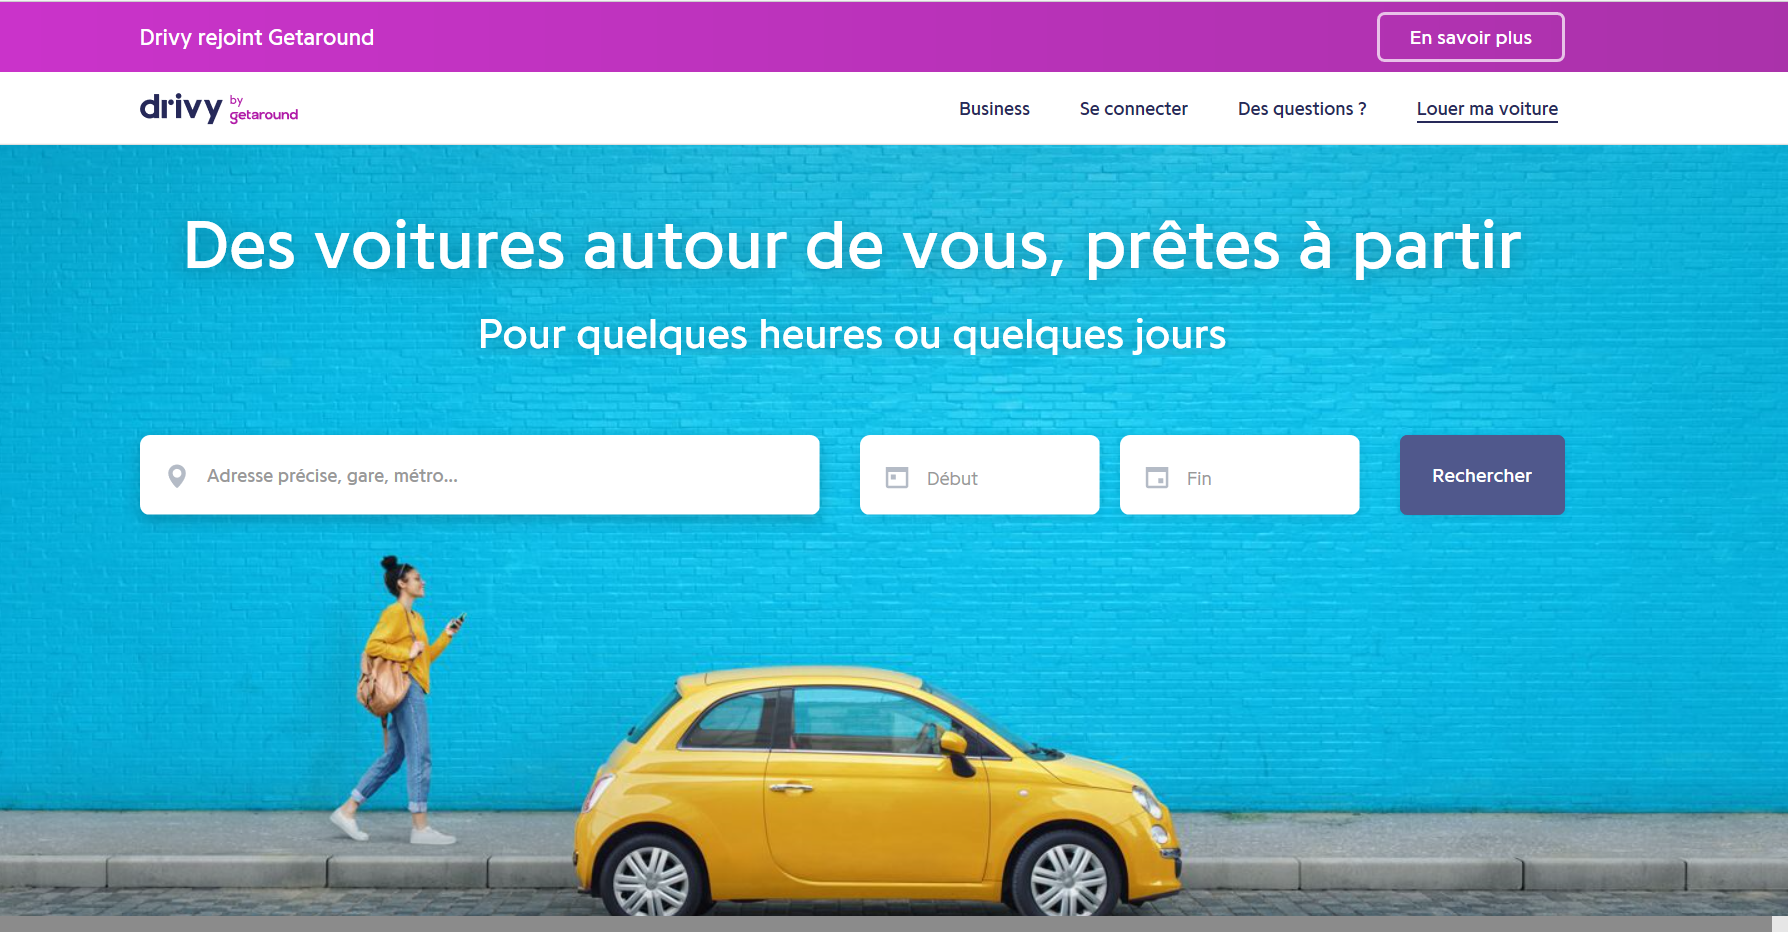 share-carshare-getaround02